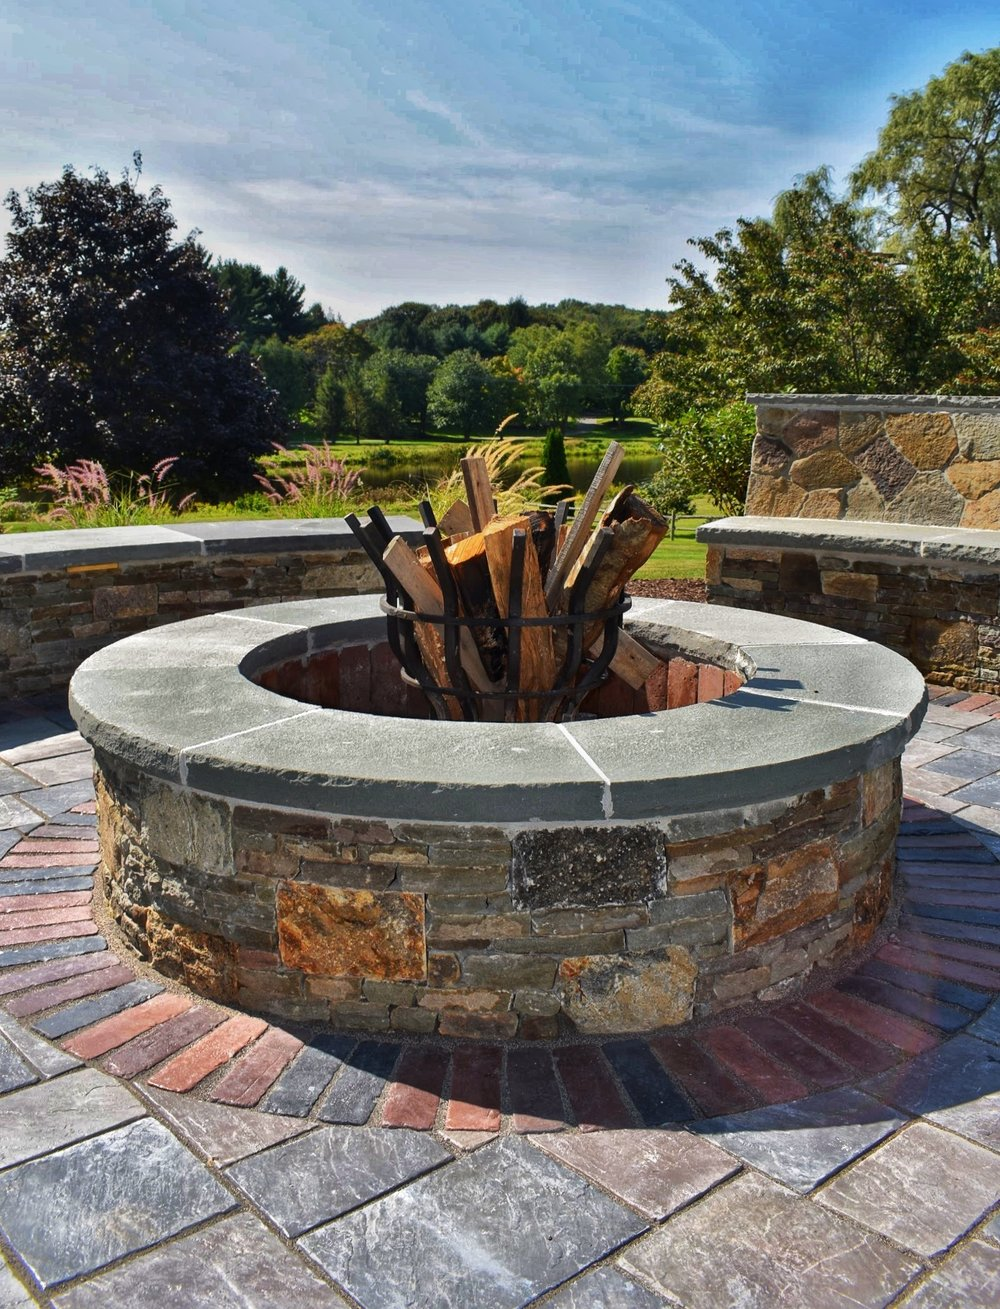 southboro-firepit-patio+(10).jpg